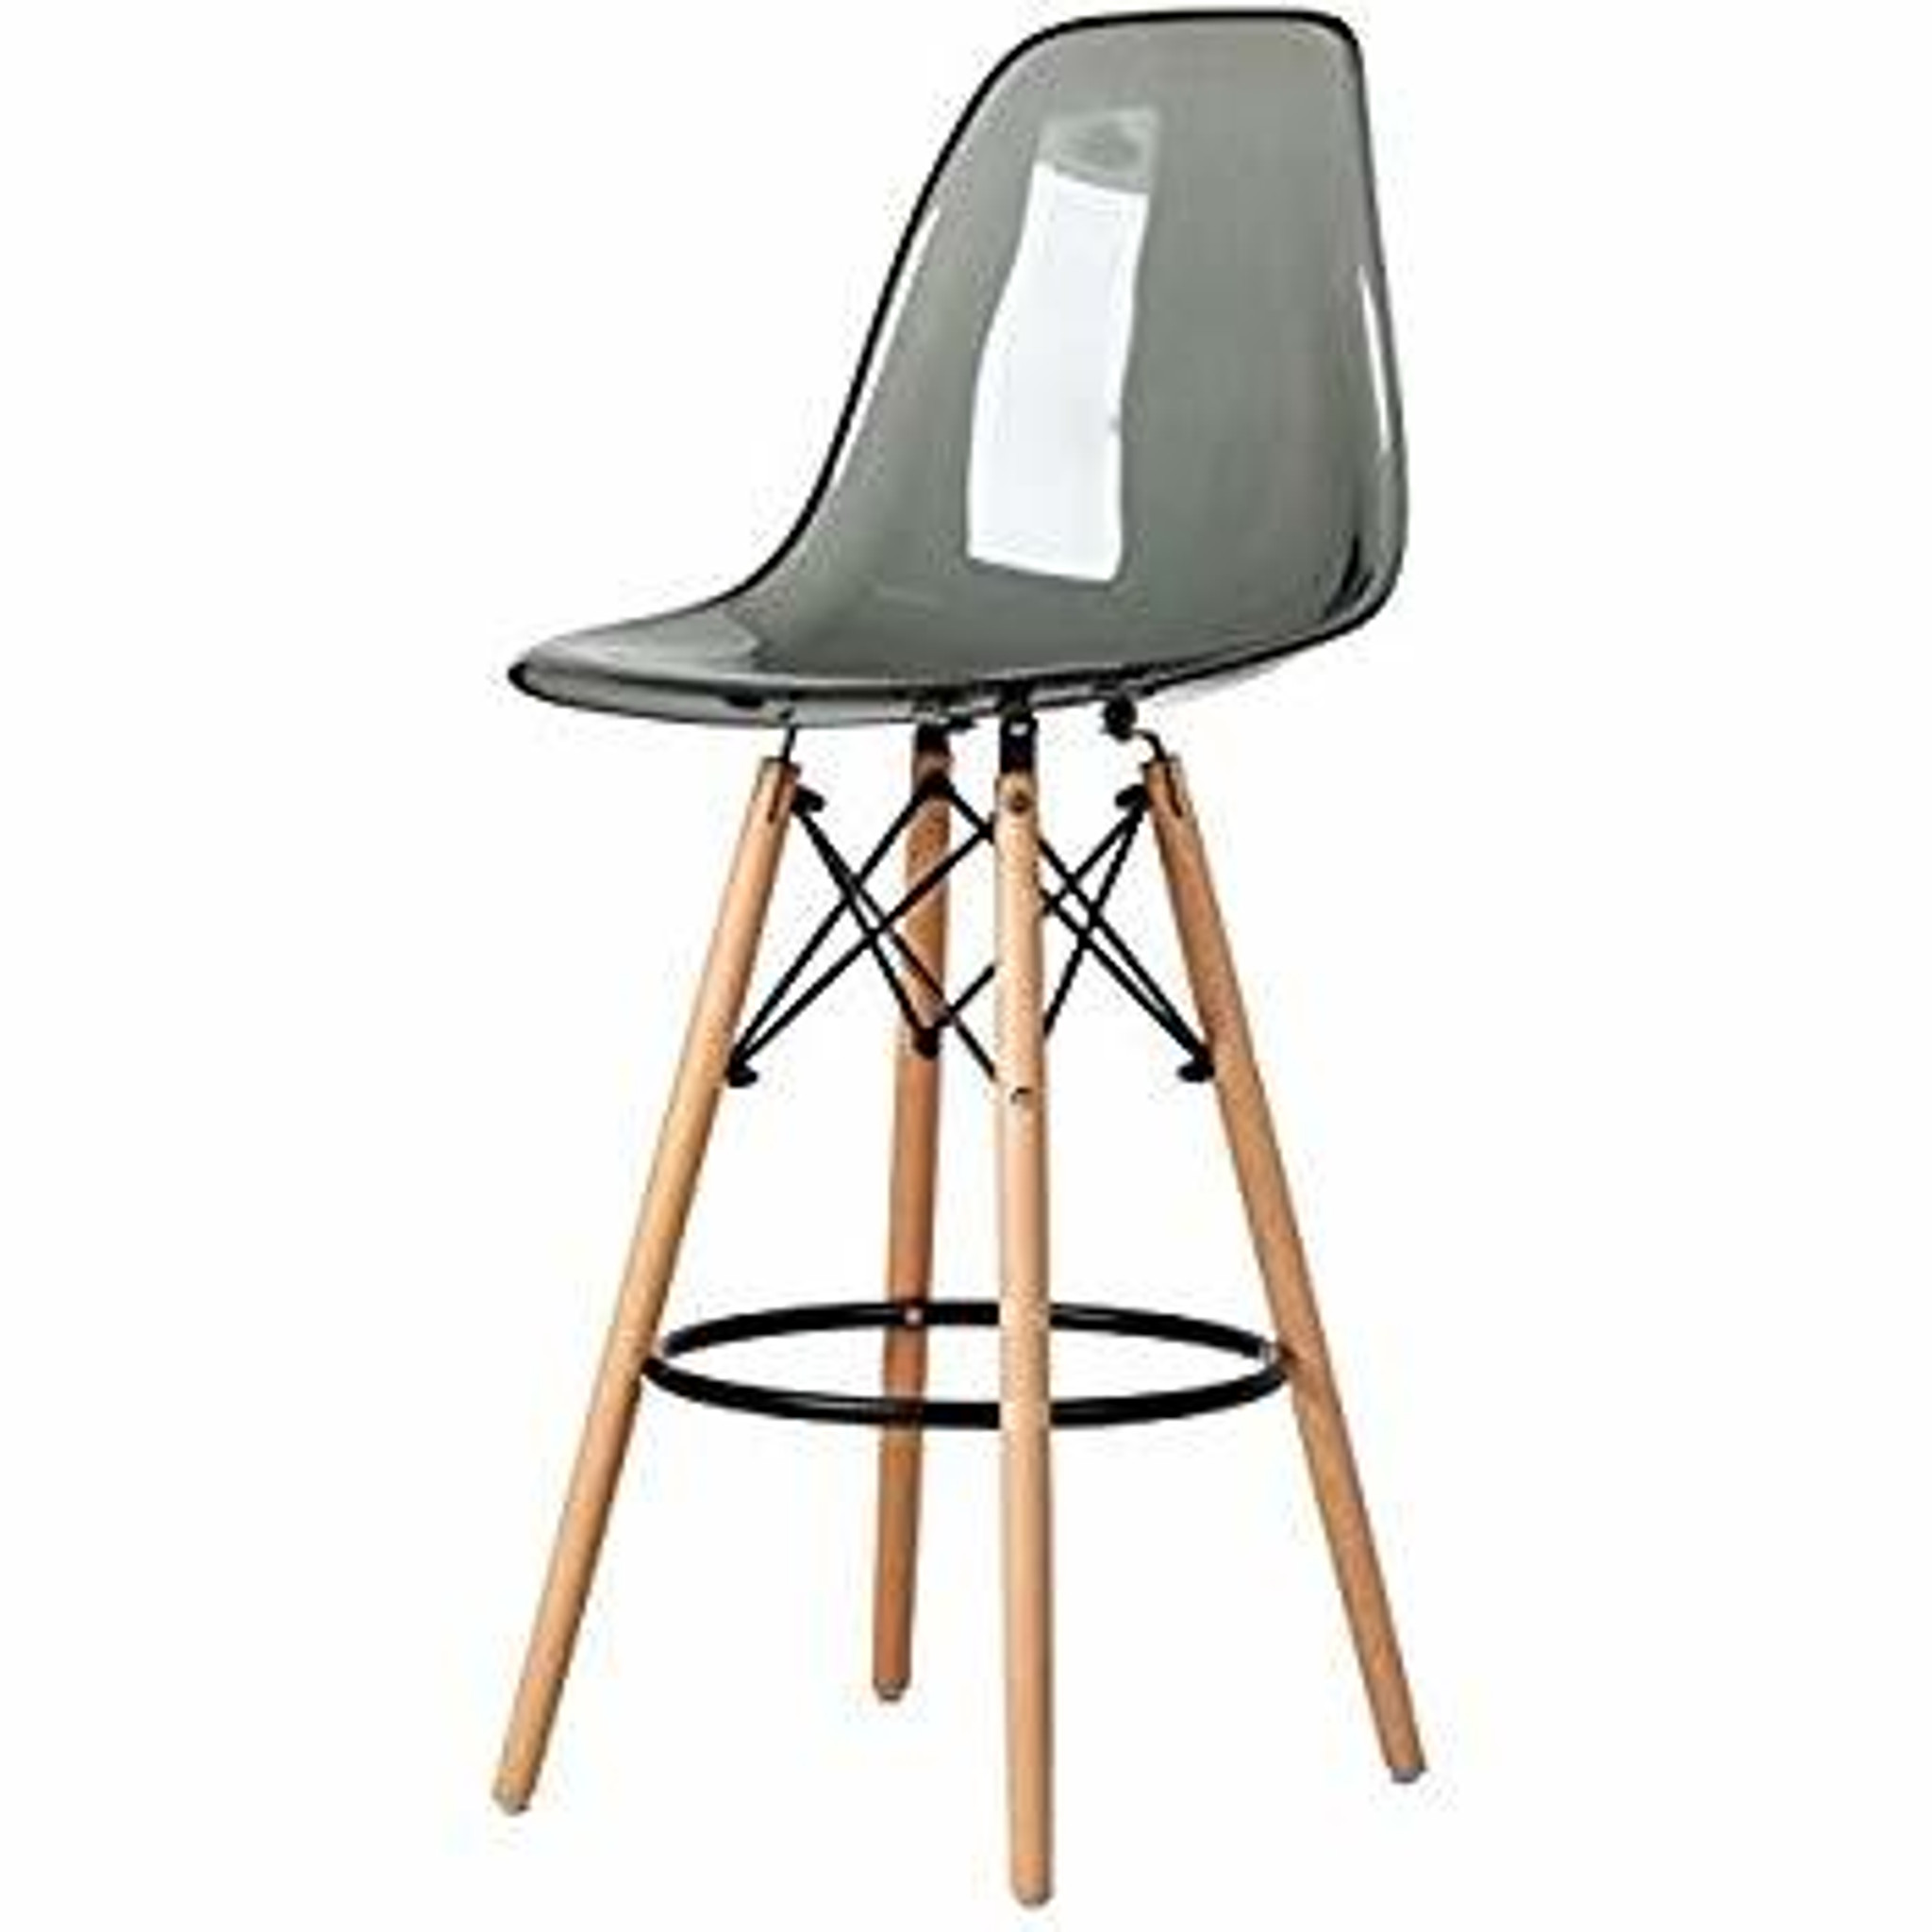 clear acrylic lucite grey eames counter stool replica with wood Eiffel legs